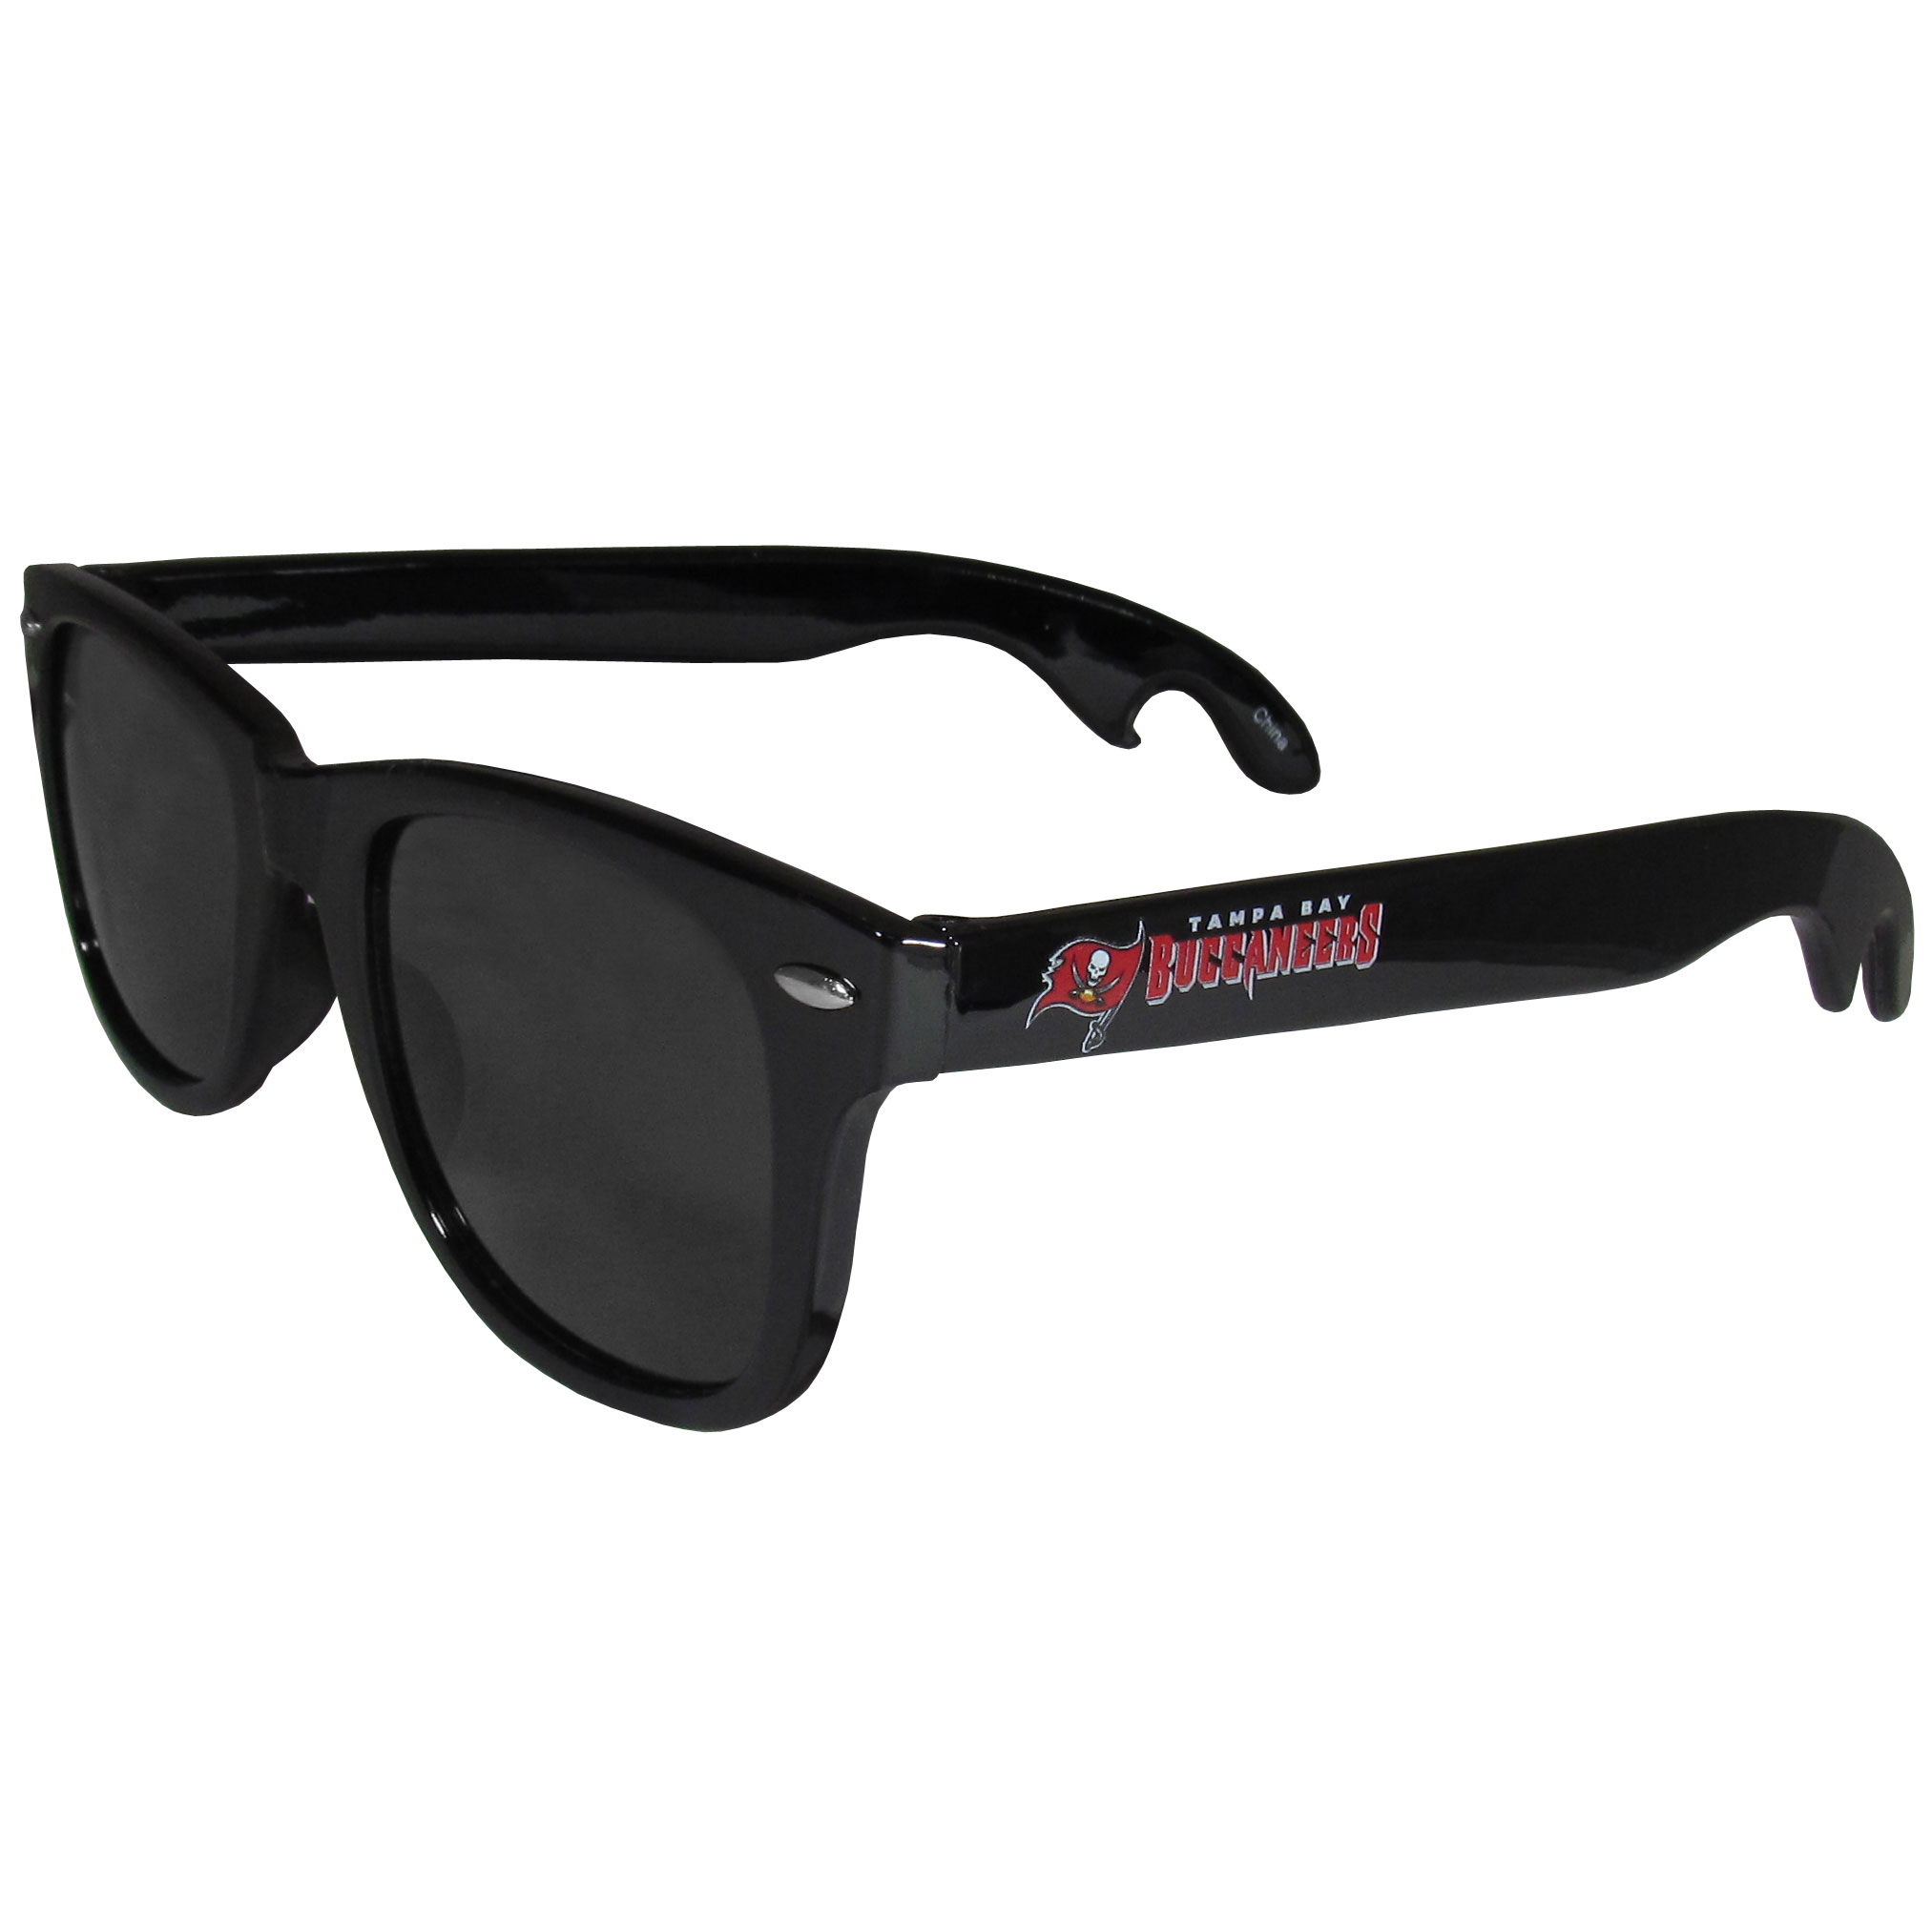 Tampa Bay Buccaneers Beachfarer Bottle Opener Sunglasses - Seriously, these sunglasses open bottles! Keep the party going with these amazing Tampa Bay Buccaneers bottle opener sunglasses. The stylish retro frames feature team designs on the arms and functional bottle openers on the end of the arms. Whether you are at the beach or having a backyard BBQ on game day, these shades will keep your eyes protected with 100% UVA/UVB protection and keep you hydrated with the handy bottle opener arms.